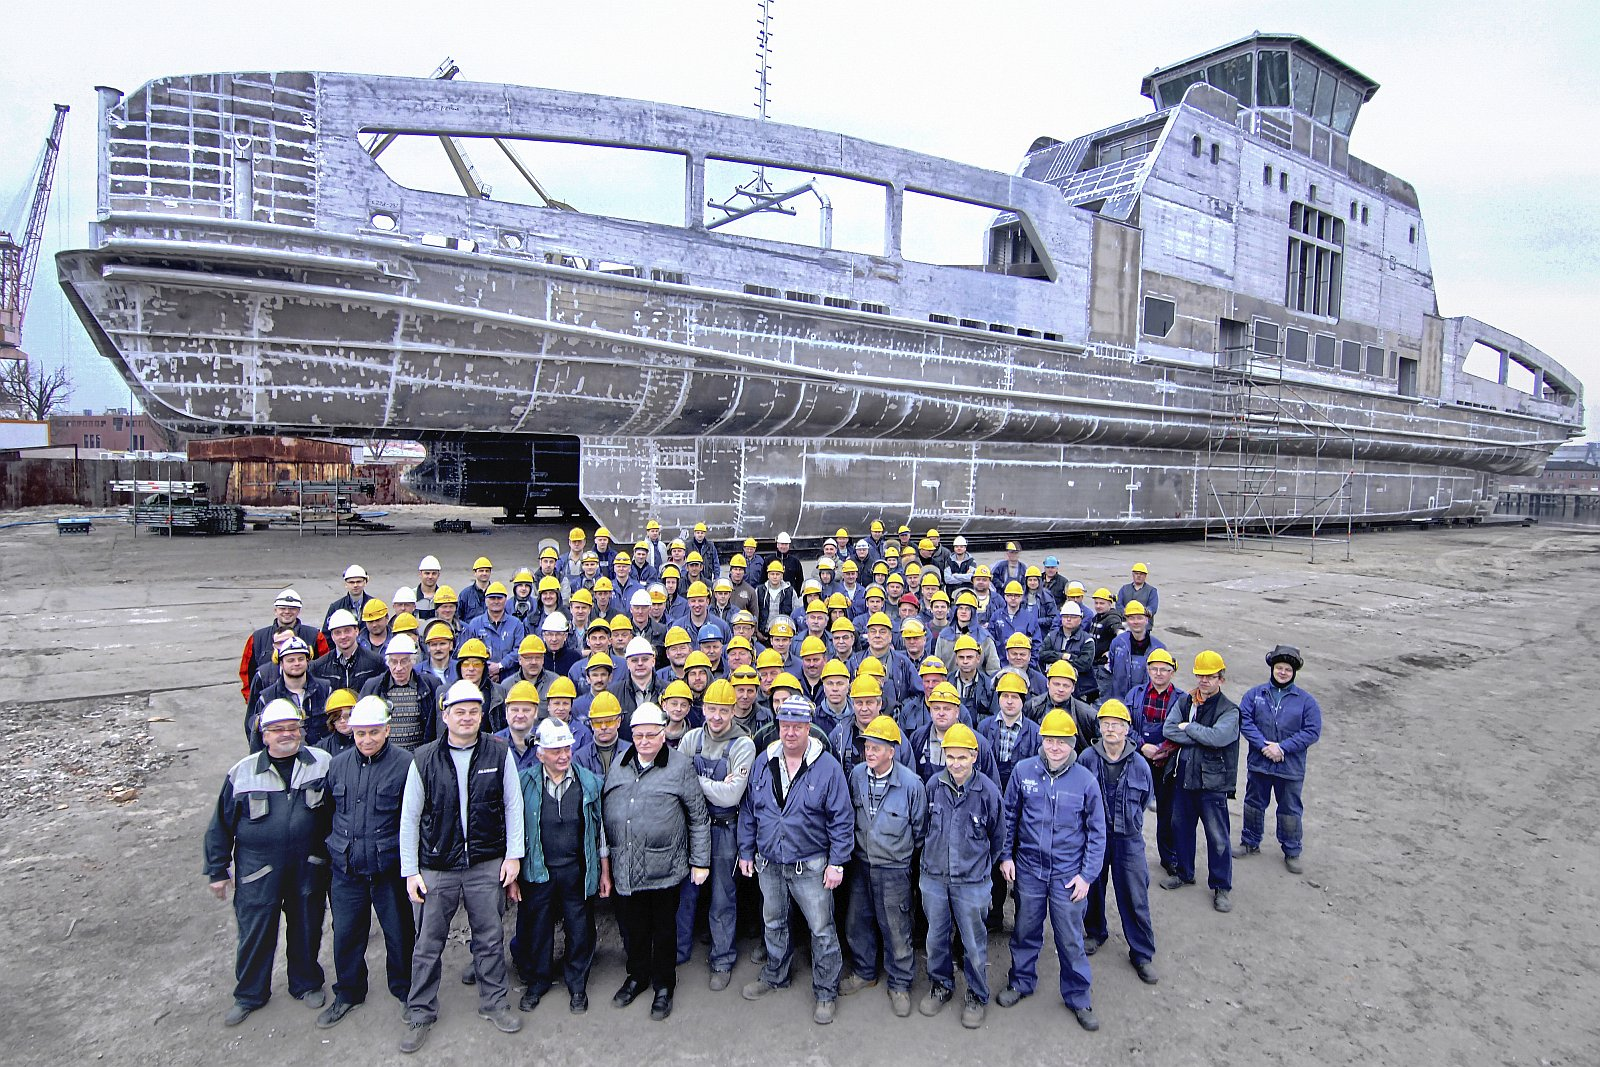 Aluship production team in front of Ampere1 hull, just before it's dispatch (2014)